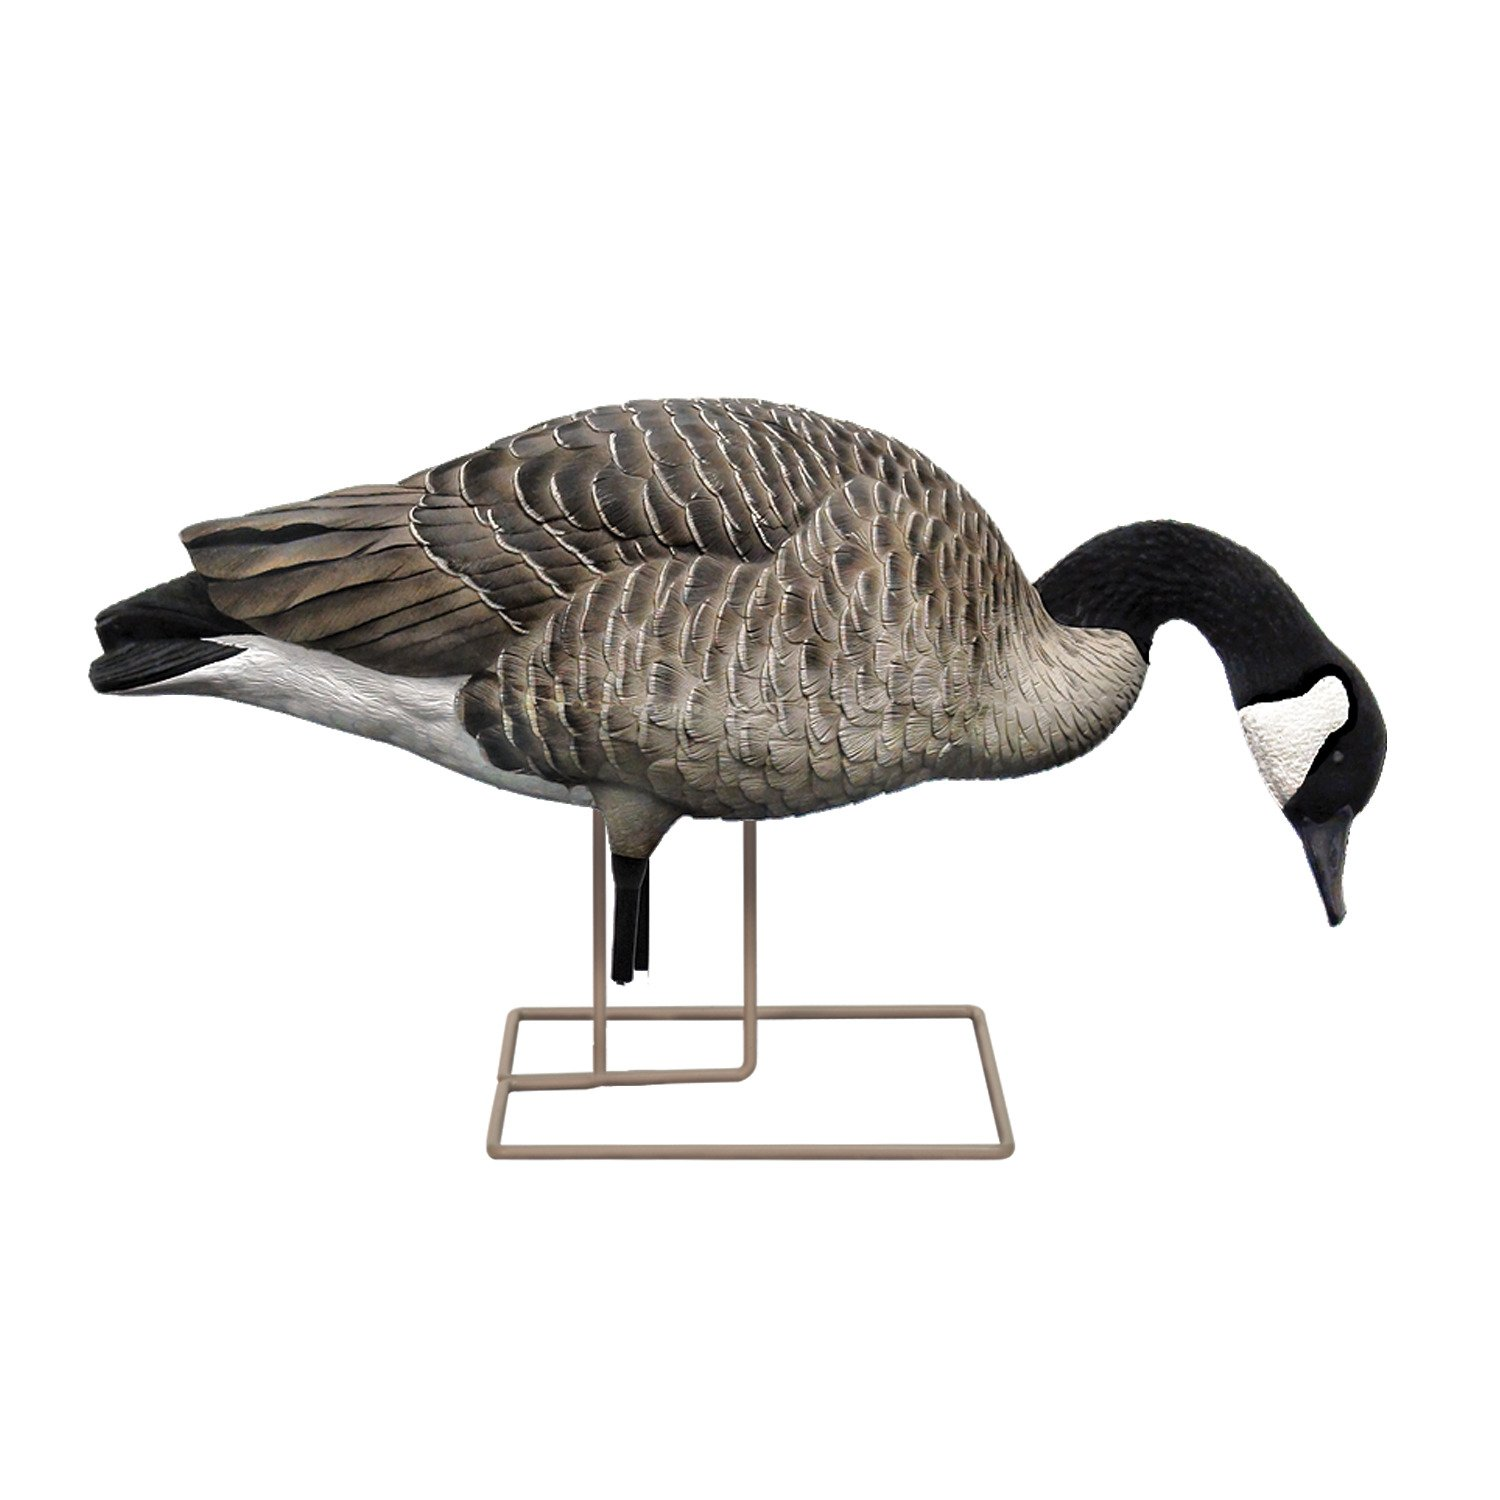 Avian-X AXP Painted Honkers Fusion Goose Decoys 6-Pack - view number 4